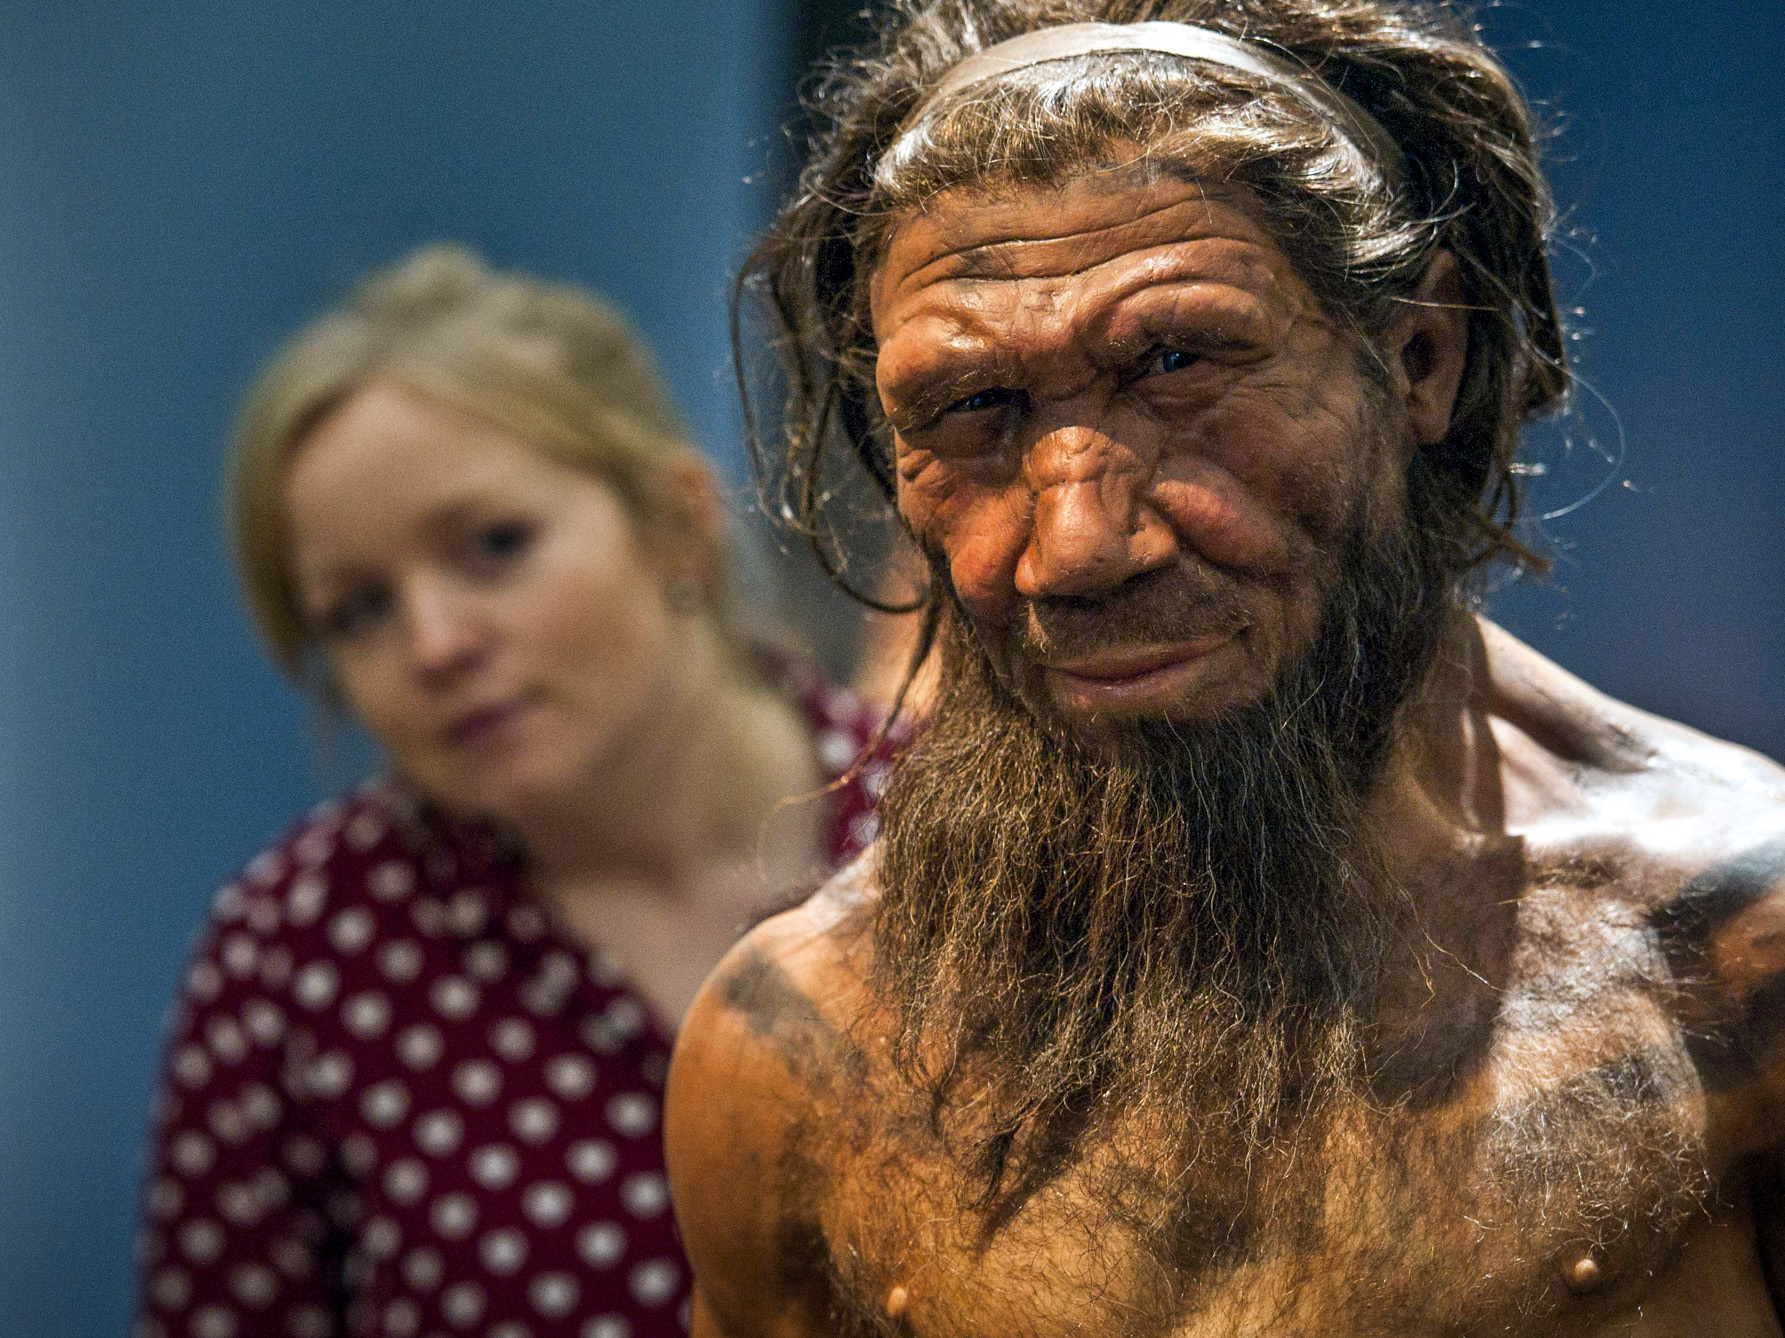 Neanderthal Genes Help Shape How Many Modern Humans Look